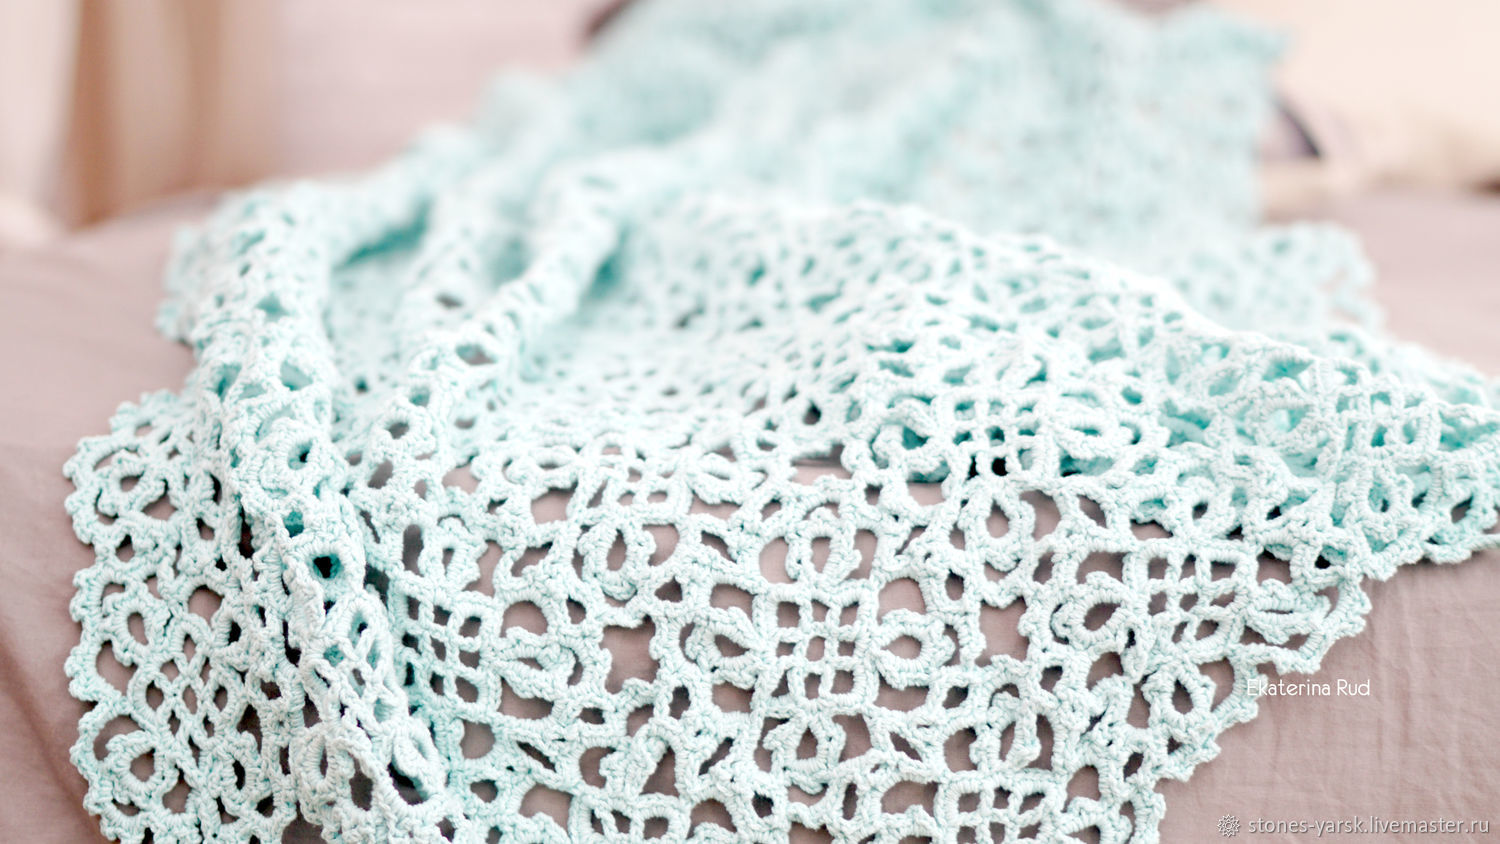 Openwork knitted blanket, bedspread ' Mint bliss', Blankets, Moscow,  Фото №1